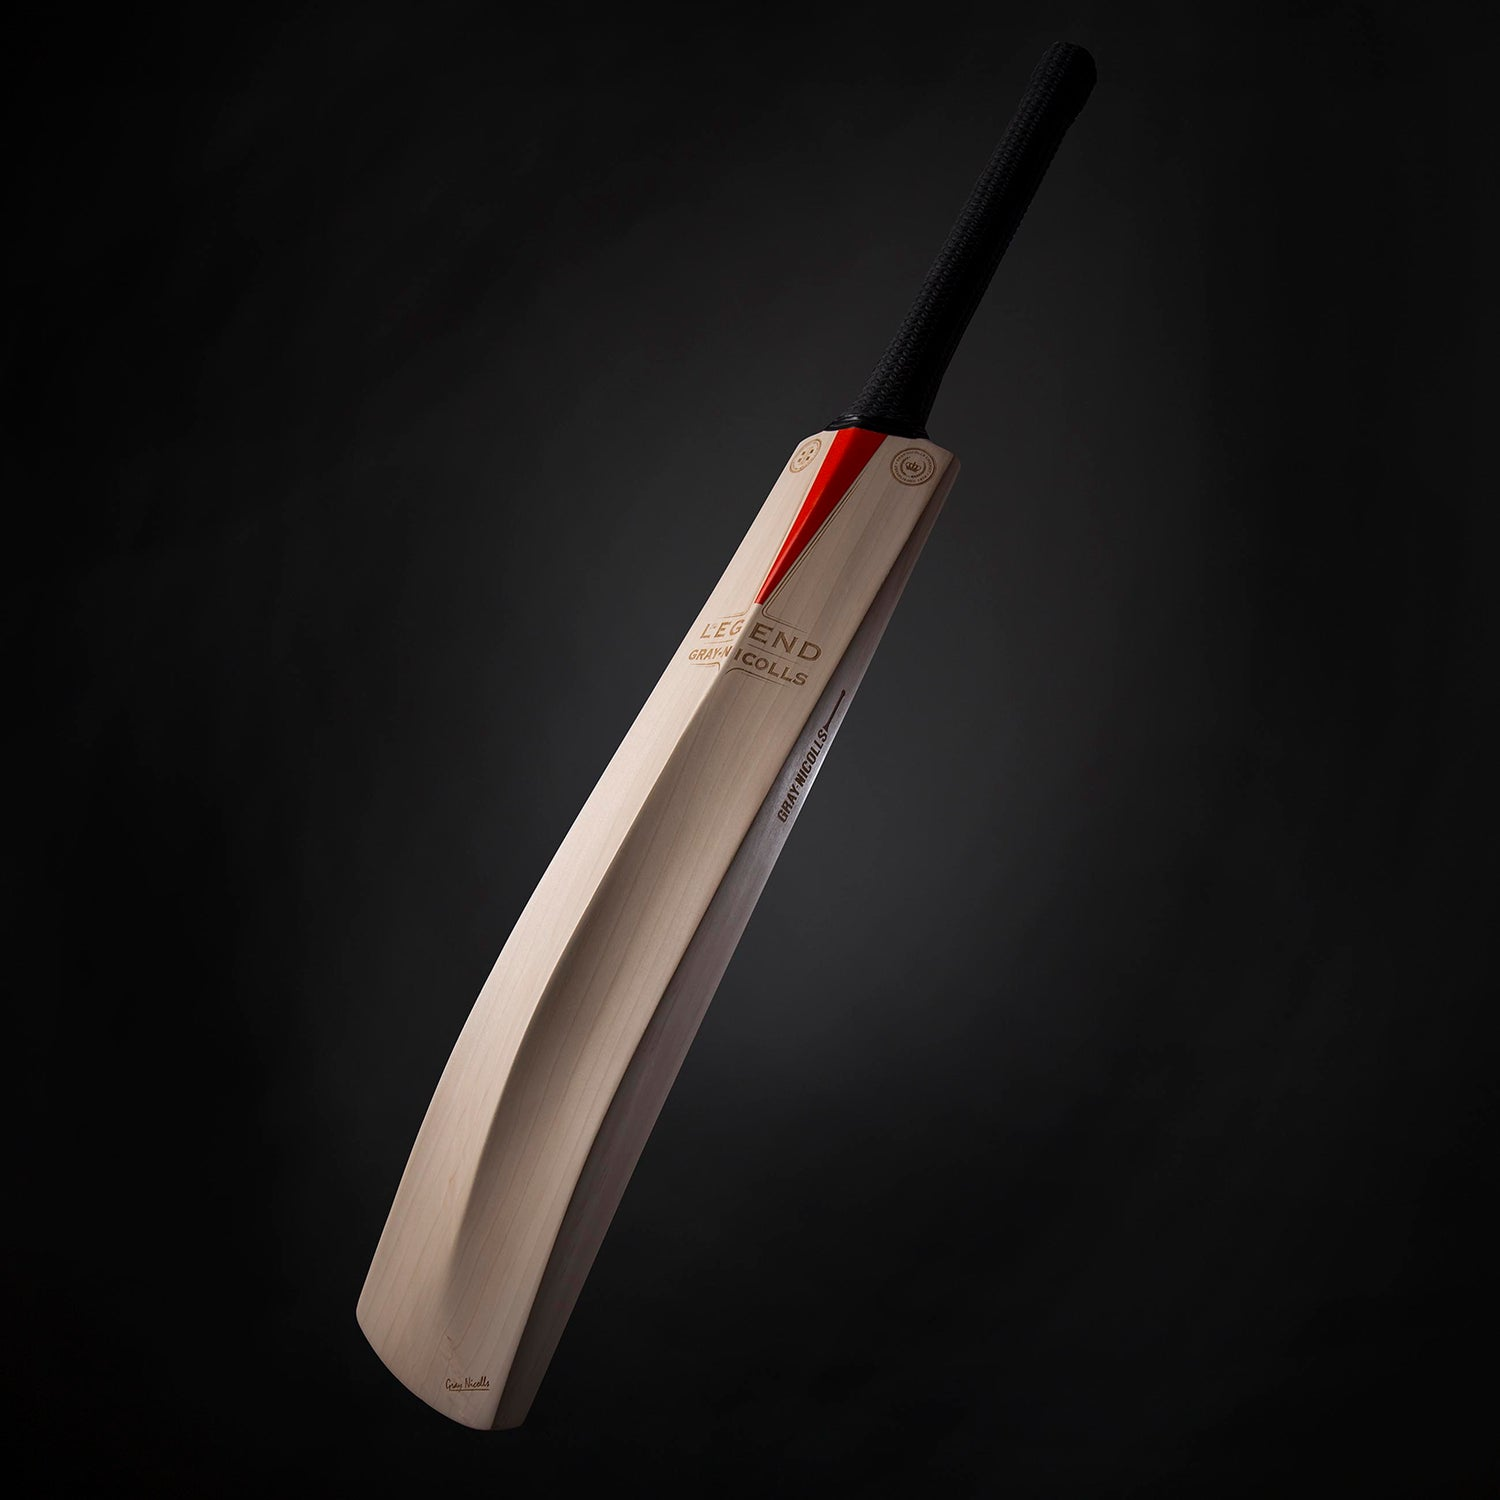 6656c49c133 GN Legend Cricket Bat | Gray-Nicolls - Free Shipping, Loyalty Points